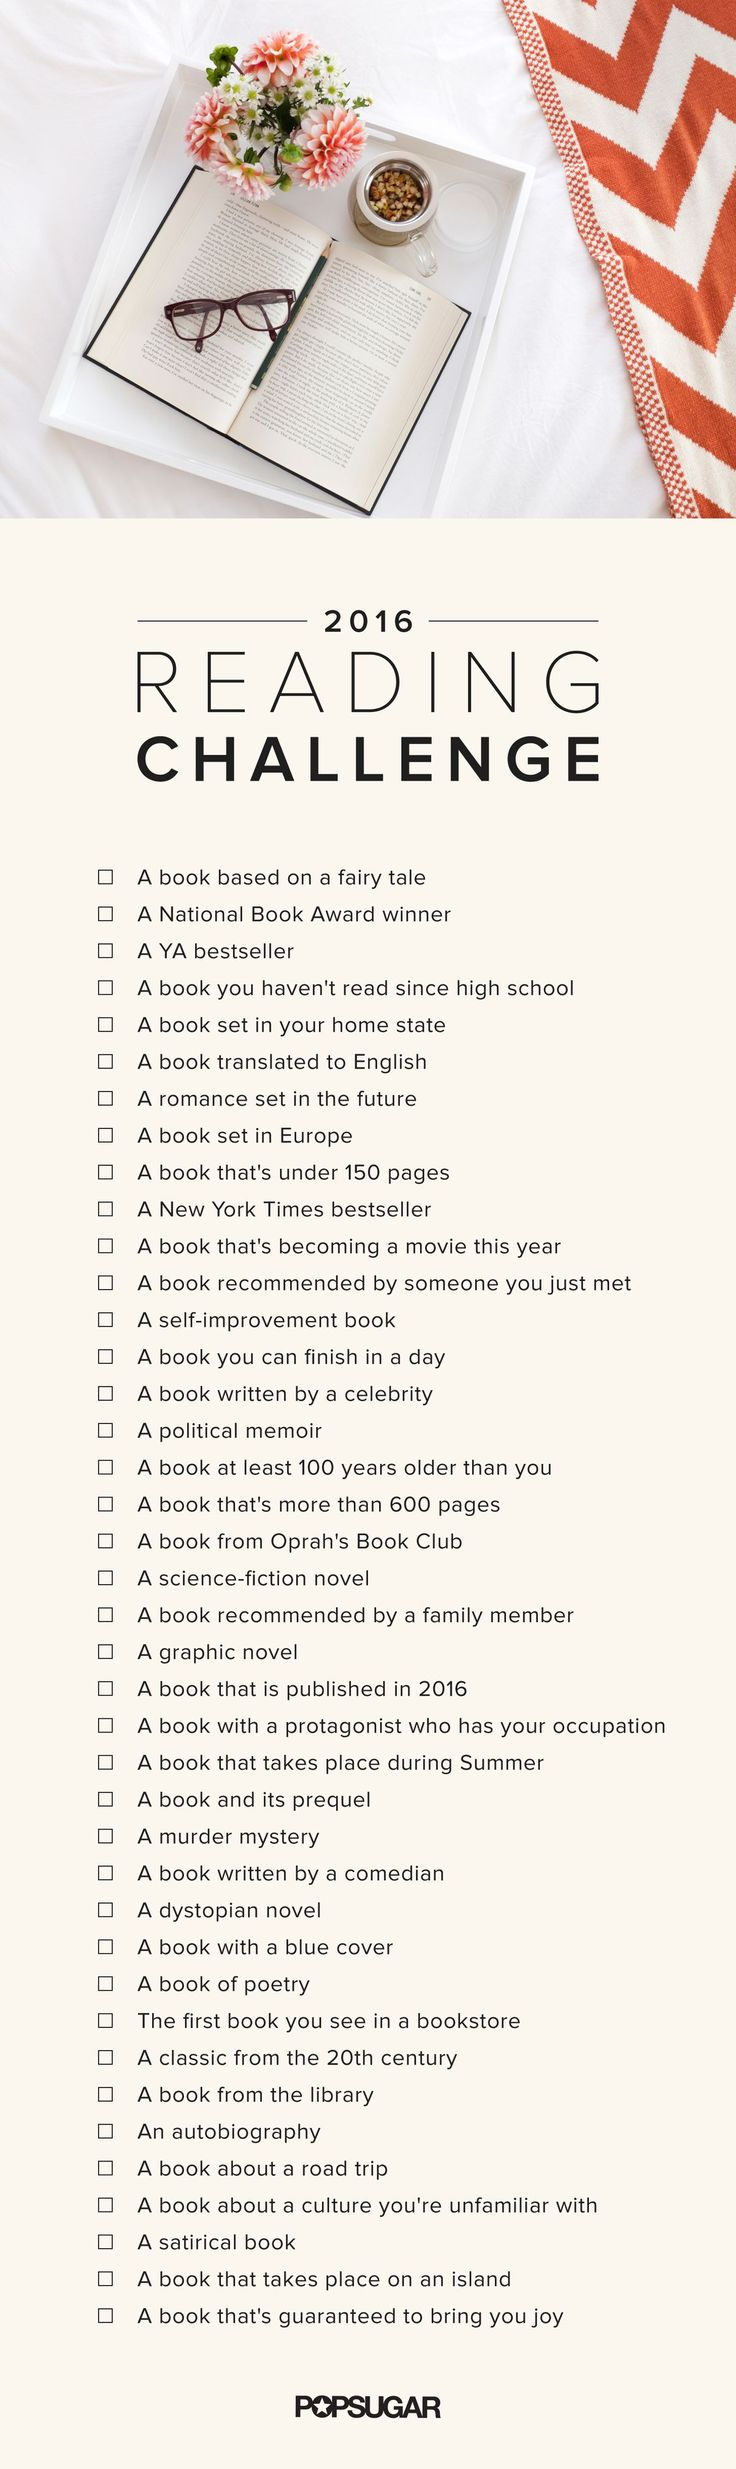 Whether you want to transport yourself to a distant country or learn something new about a time period, this challenge will make you grow both as a reader and as a person.